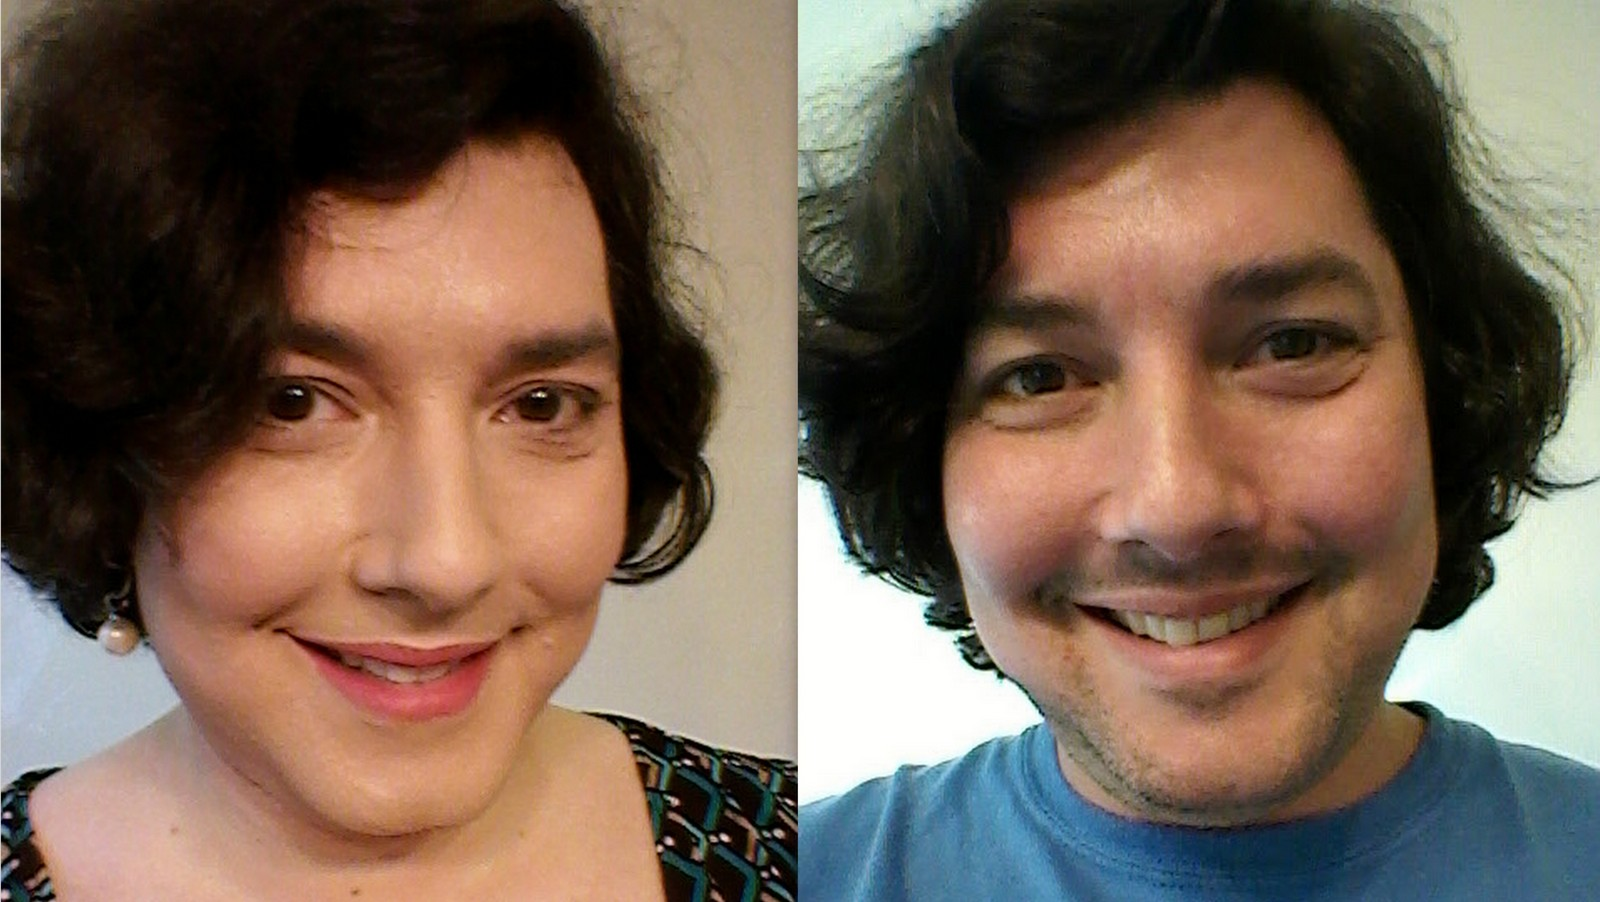 Side-by-side close-up images of the author presenting as feminine and masculine.